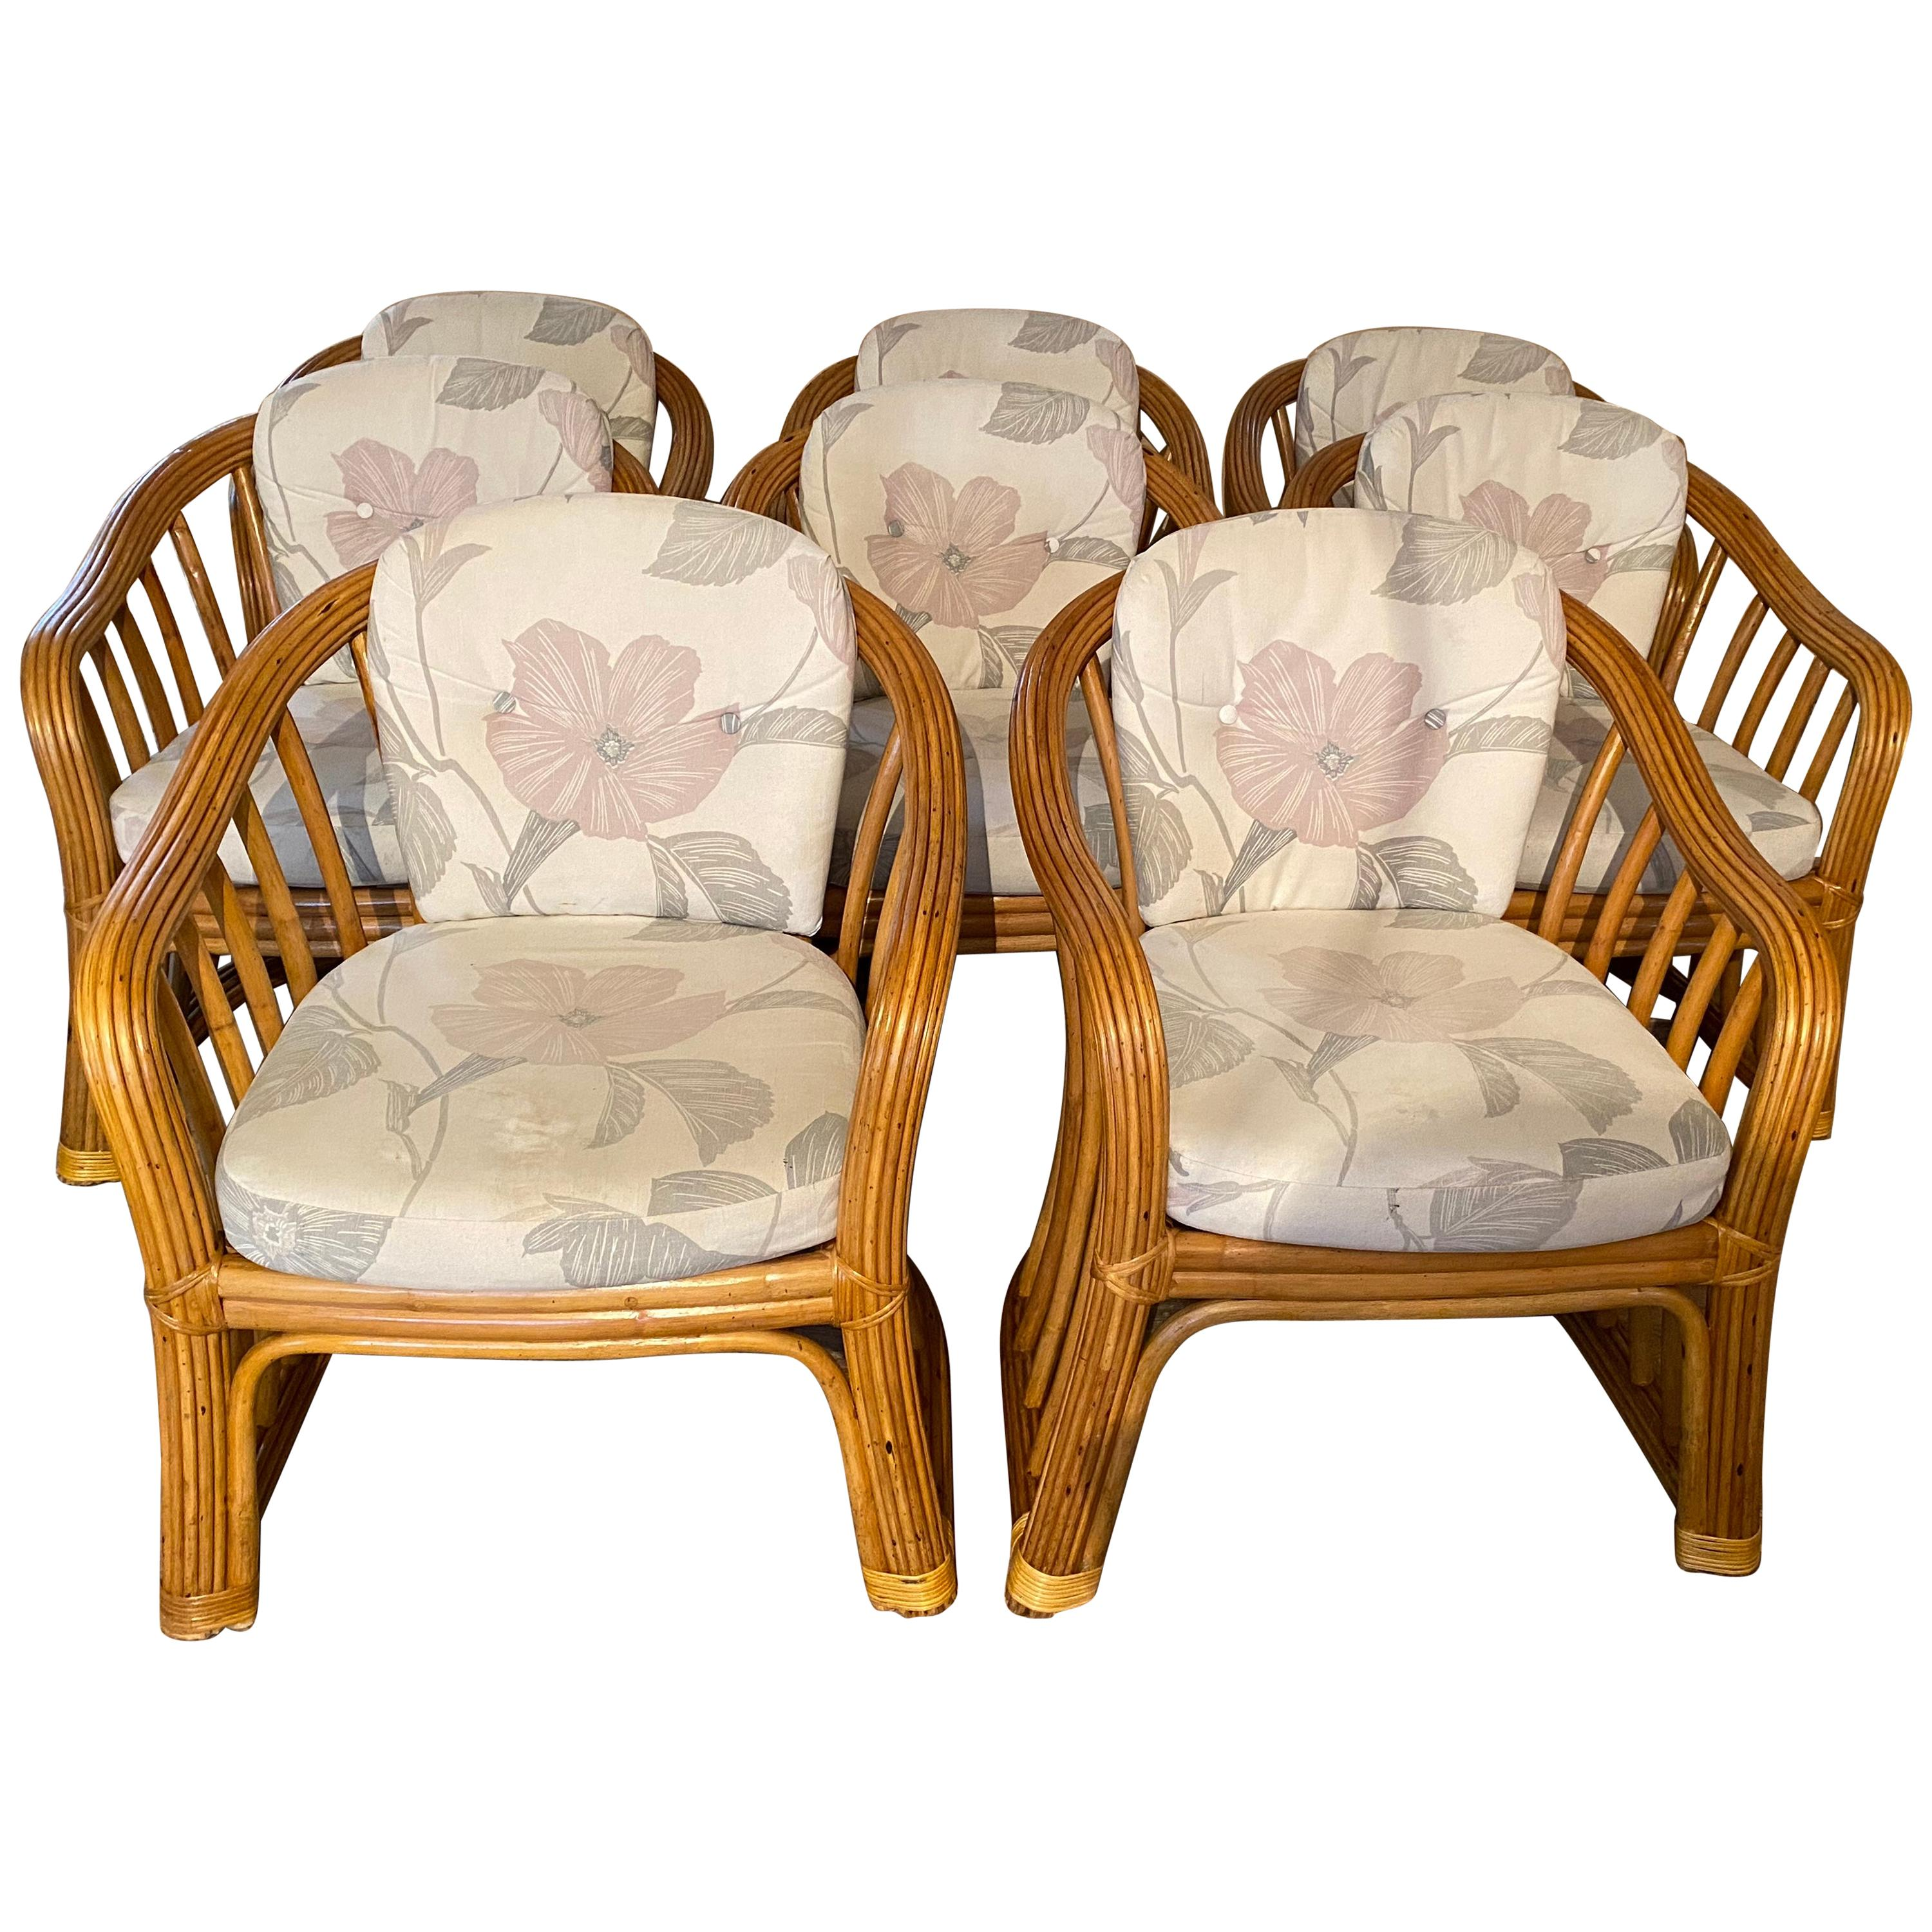 Set of 8 Bamboo Rattan Dining Chairs